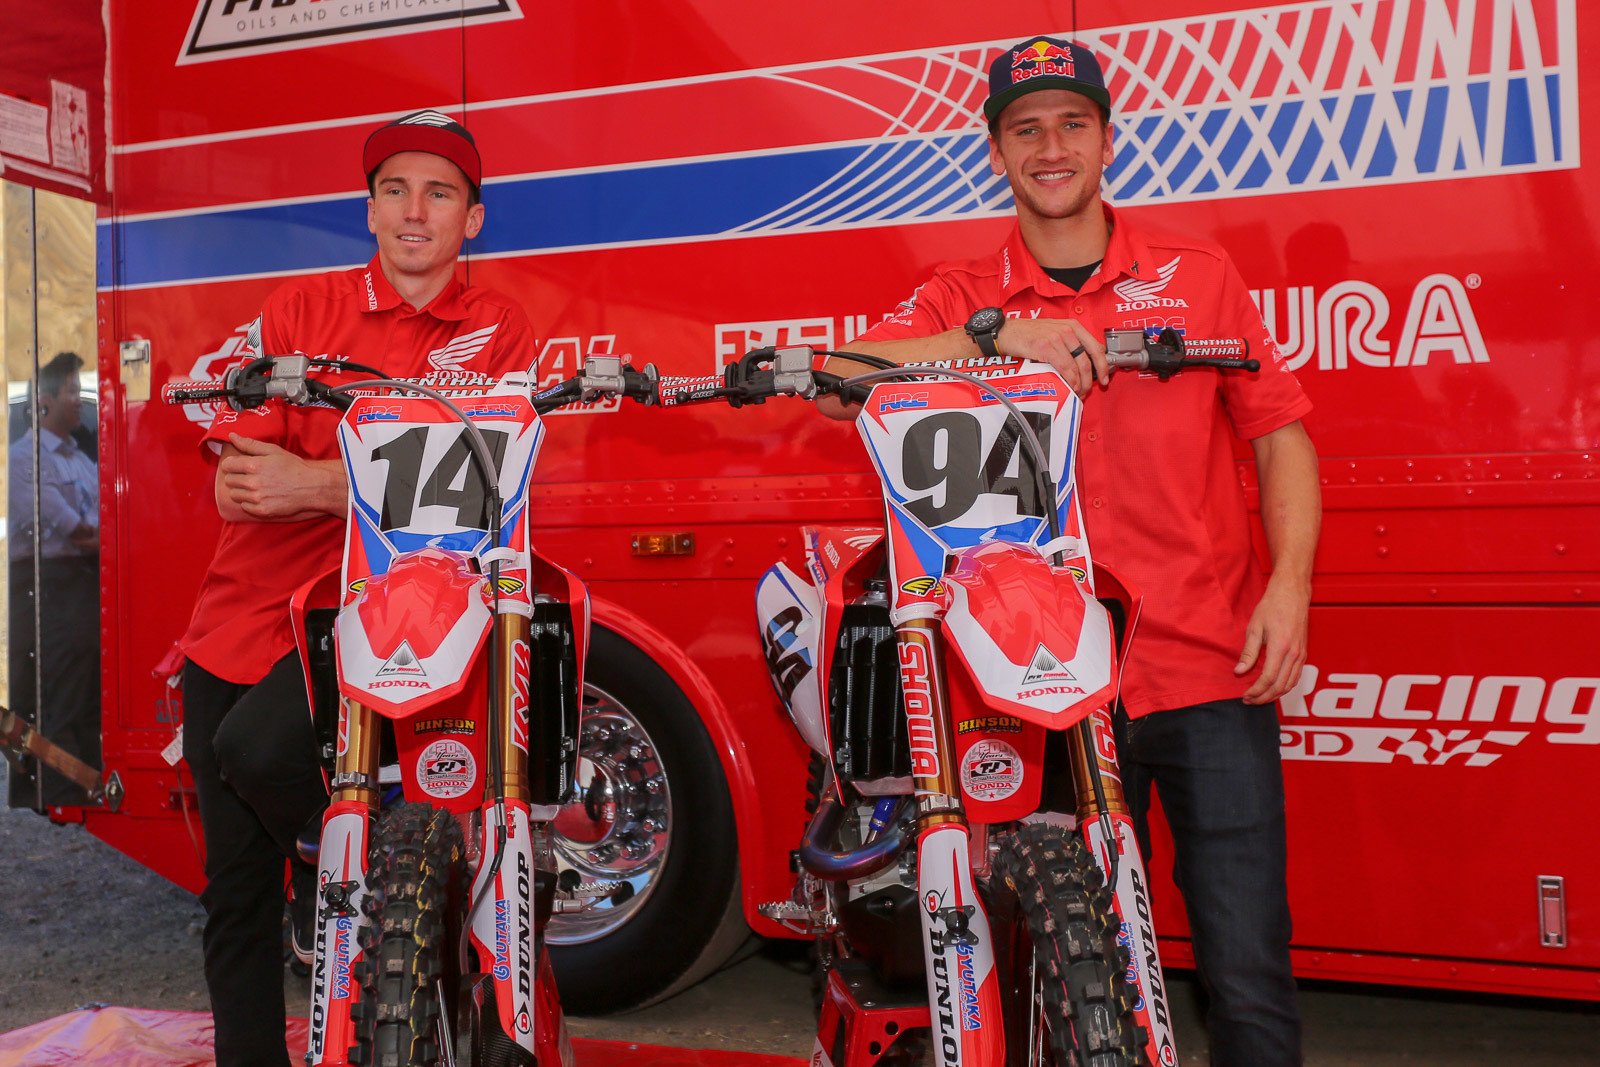 Just like last season Cole Seely and Ken Roczen make up the Team Honda HRC crew. Just making it back to the season after his arm rebuild is already a huge win for Ken and the team. Cole may be coming in under the radar, but he's been looking very fast and smooth when we've seen him recently.